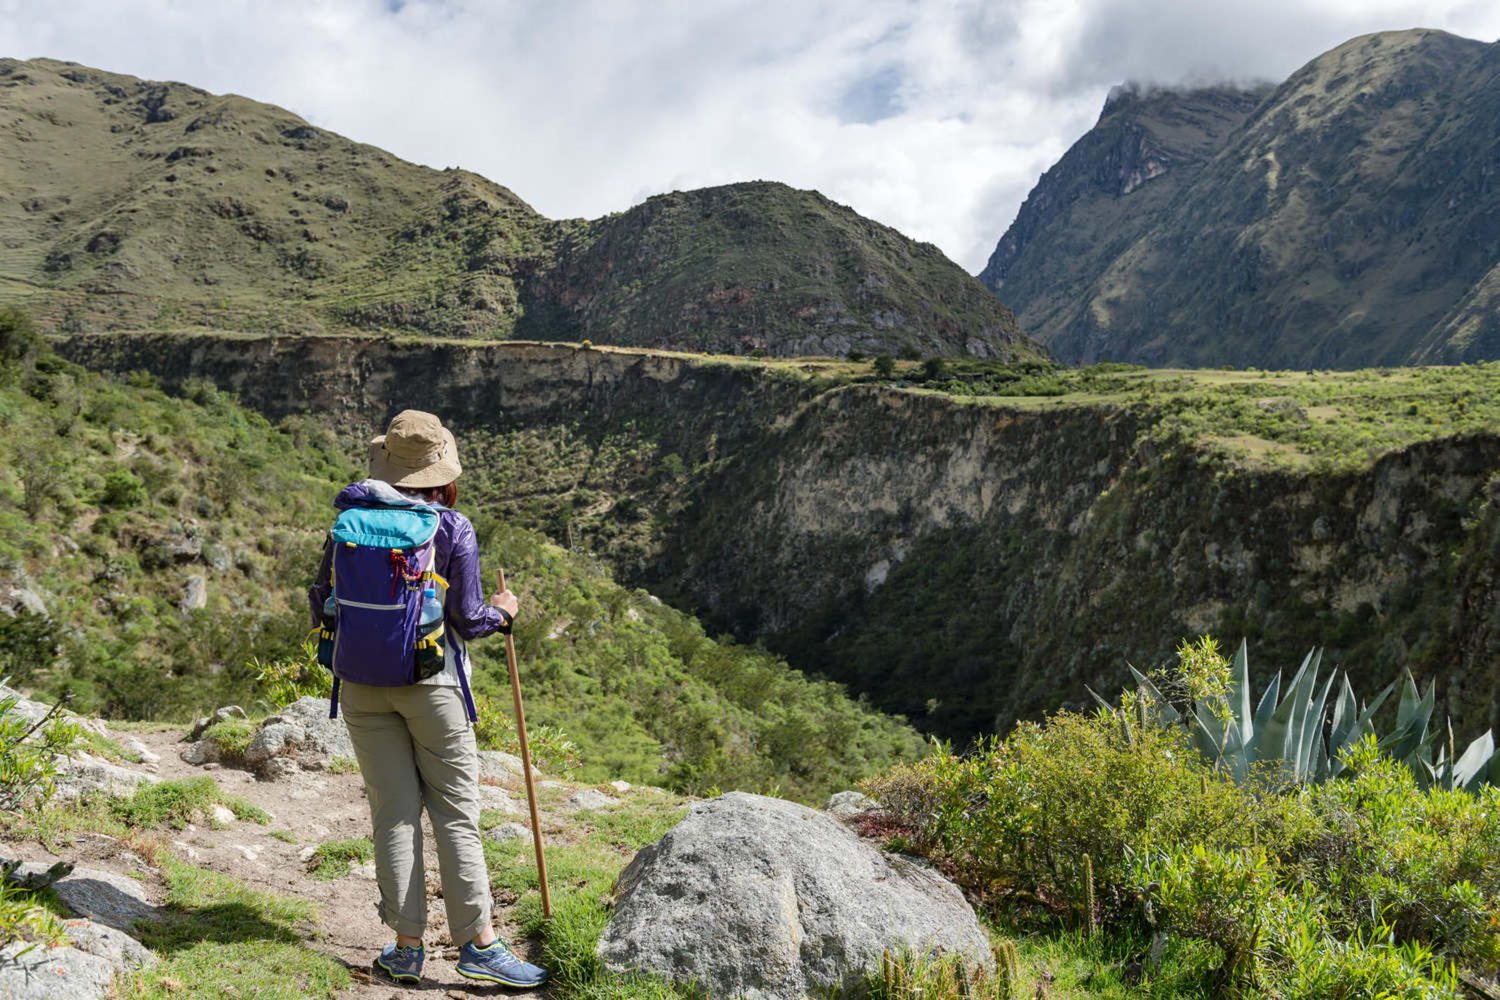 peru-inca-trail-travallers-walking-on-the-inca-trail-km82-machu-picchu-peru